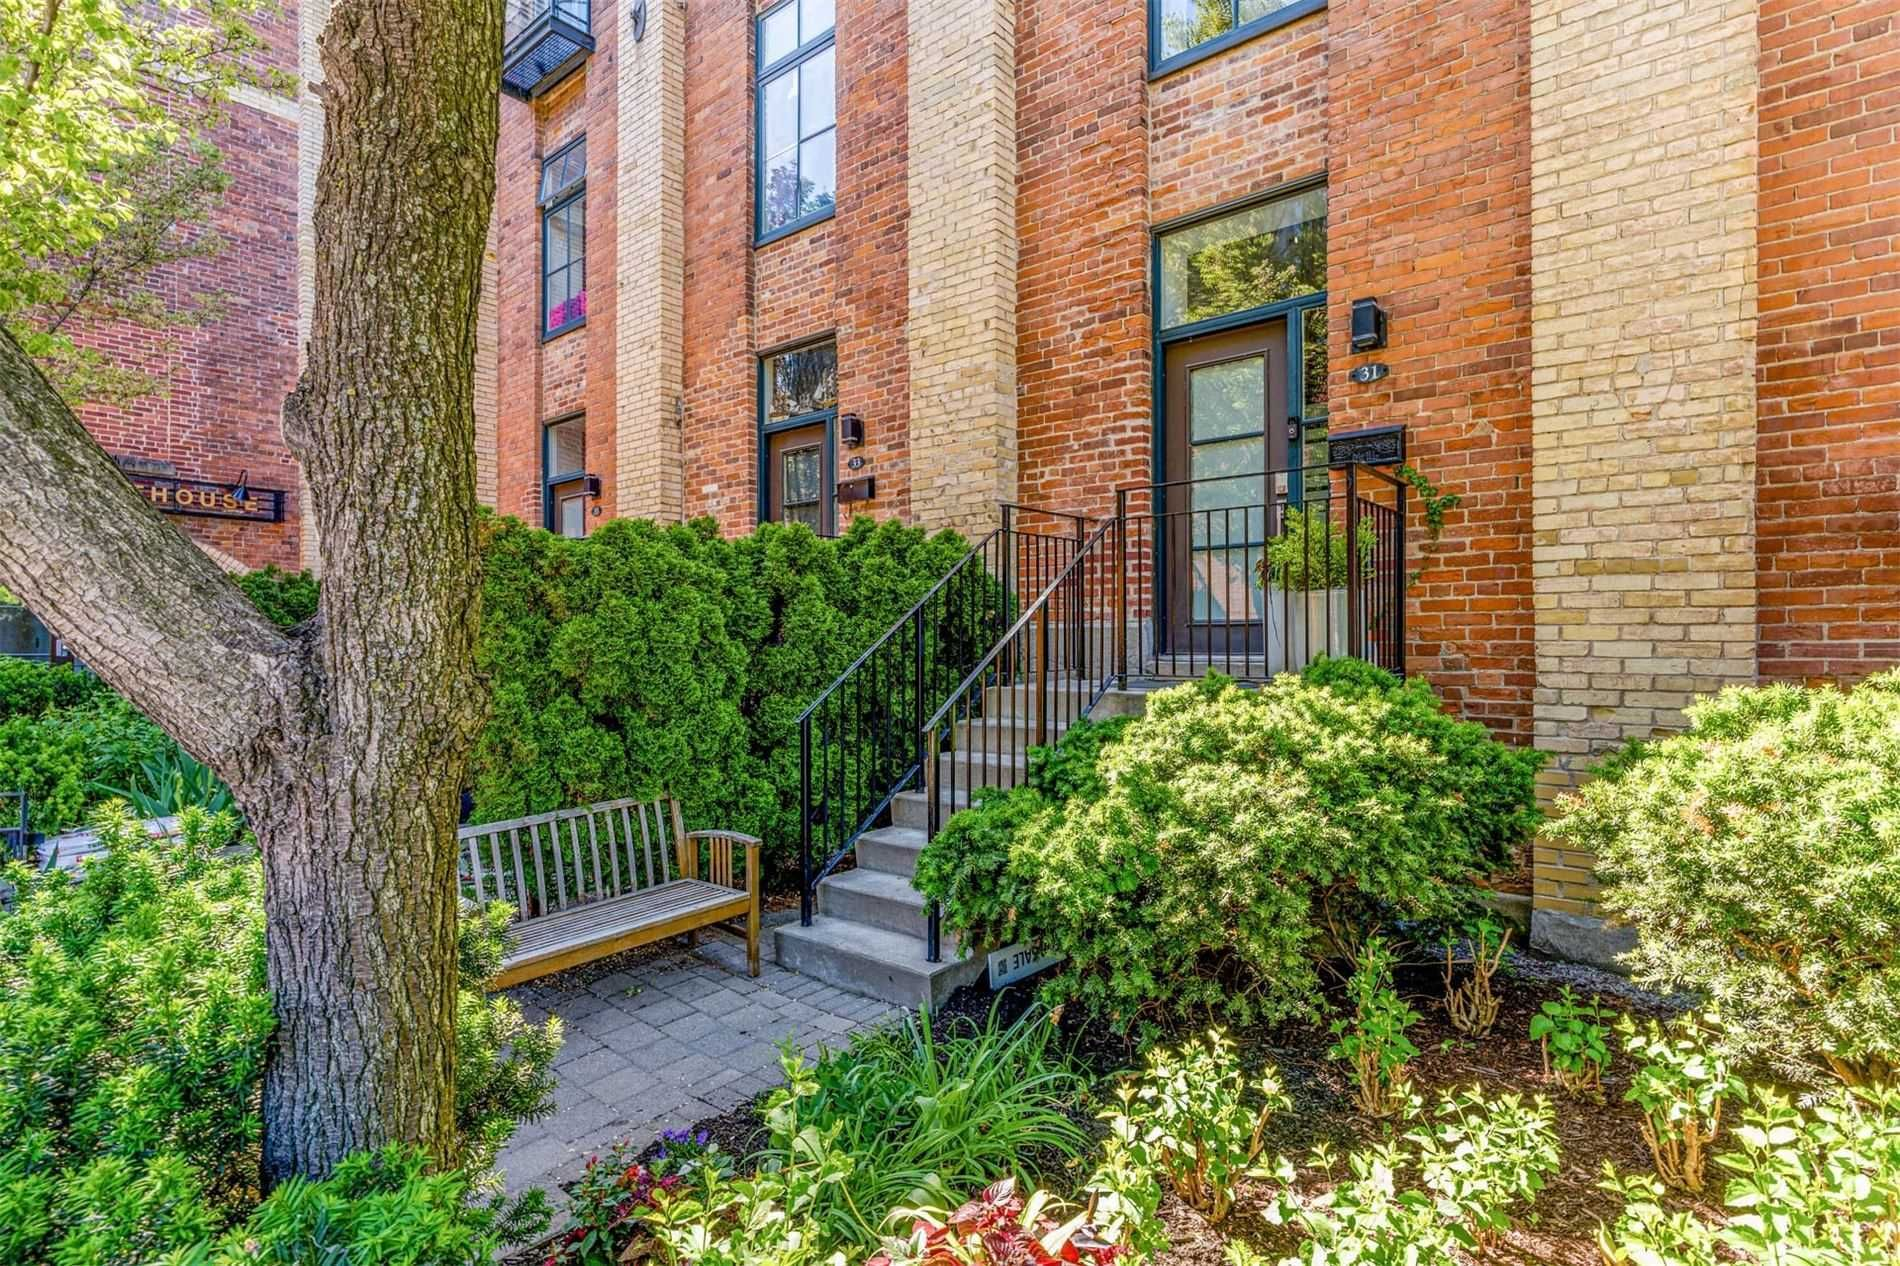 Main Photo: 31 Old Brewery Lane in Toronto: Moss Park Condo for sale (Toronto C08)  : MLS®# C5248286